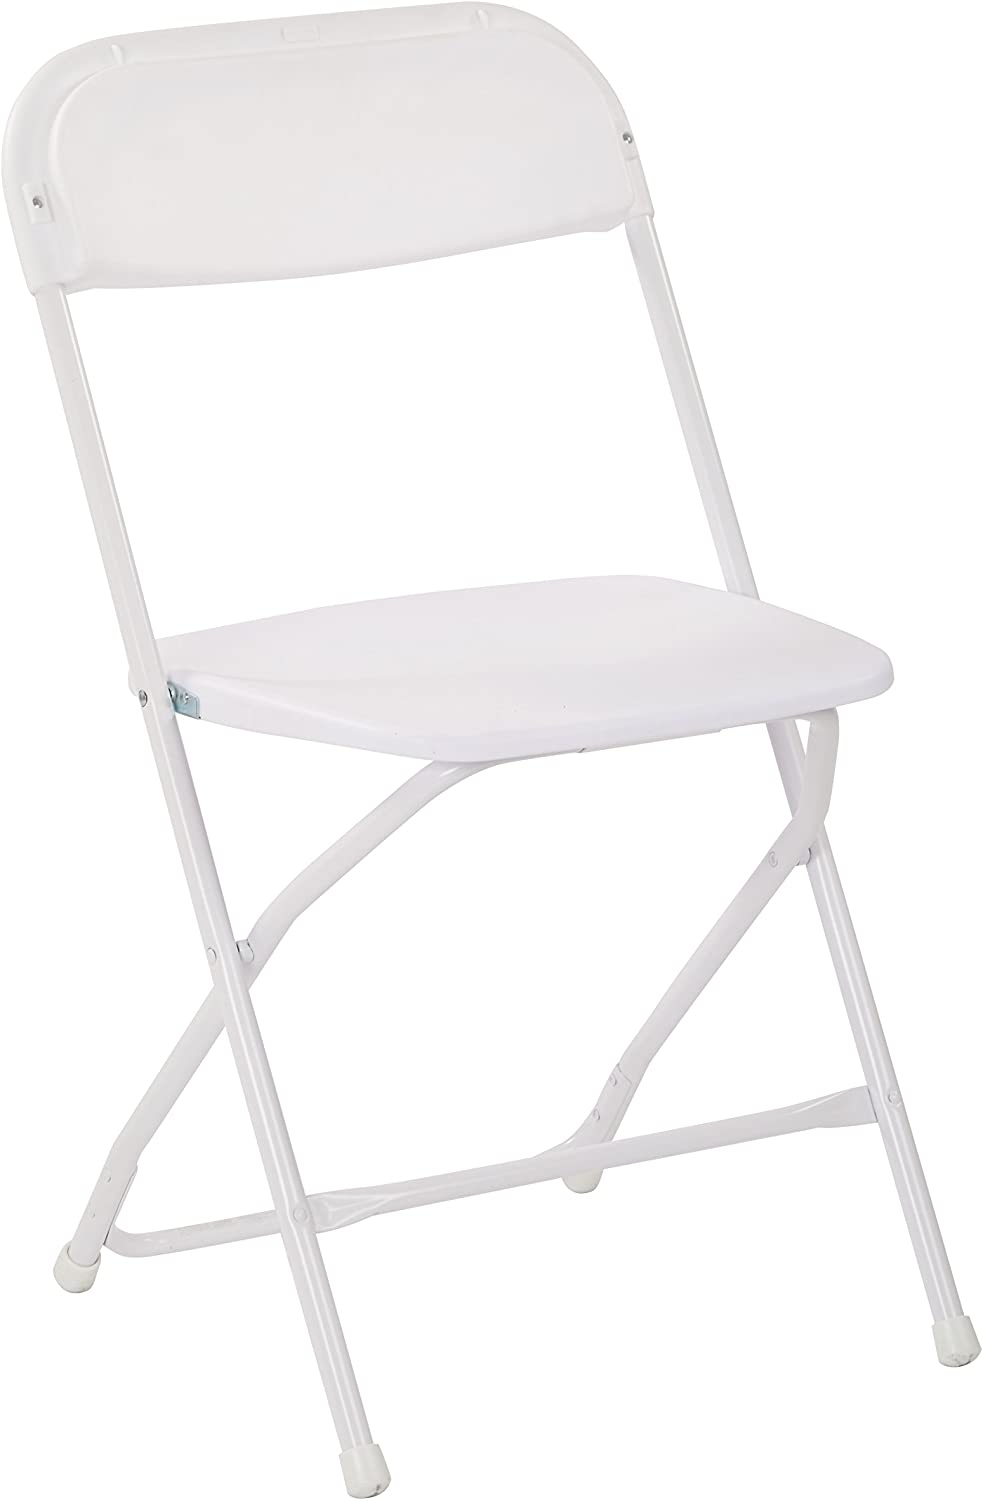 Work Smart RC8811A4 Plastic Seat and Back Stacking Folding Chairs with Steel Frame, 4 Pack, White